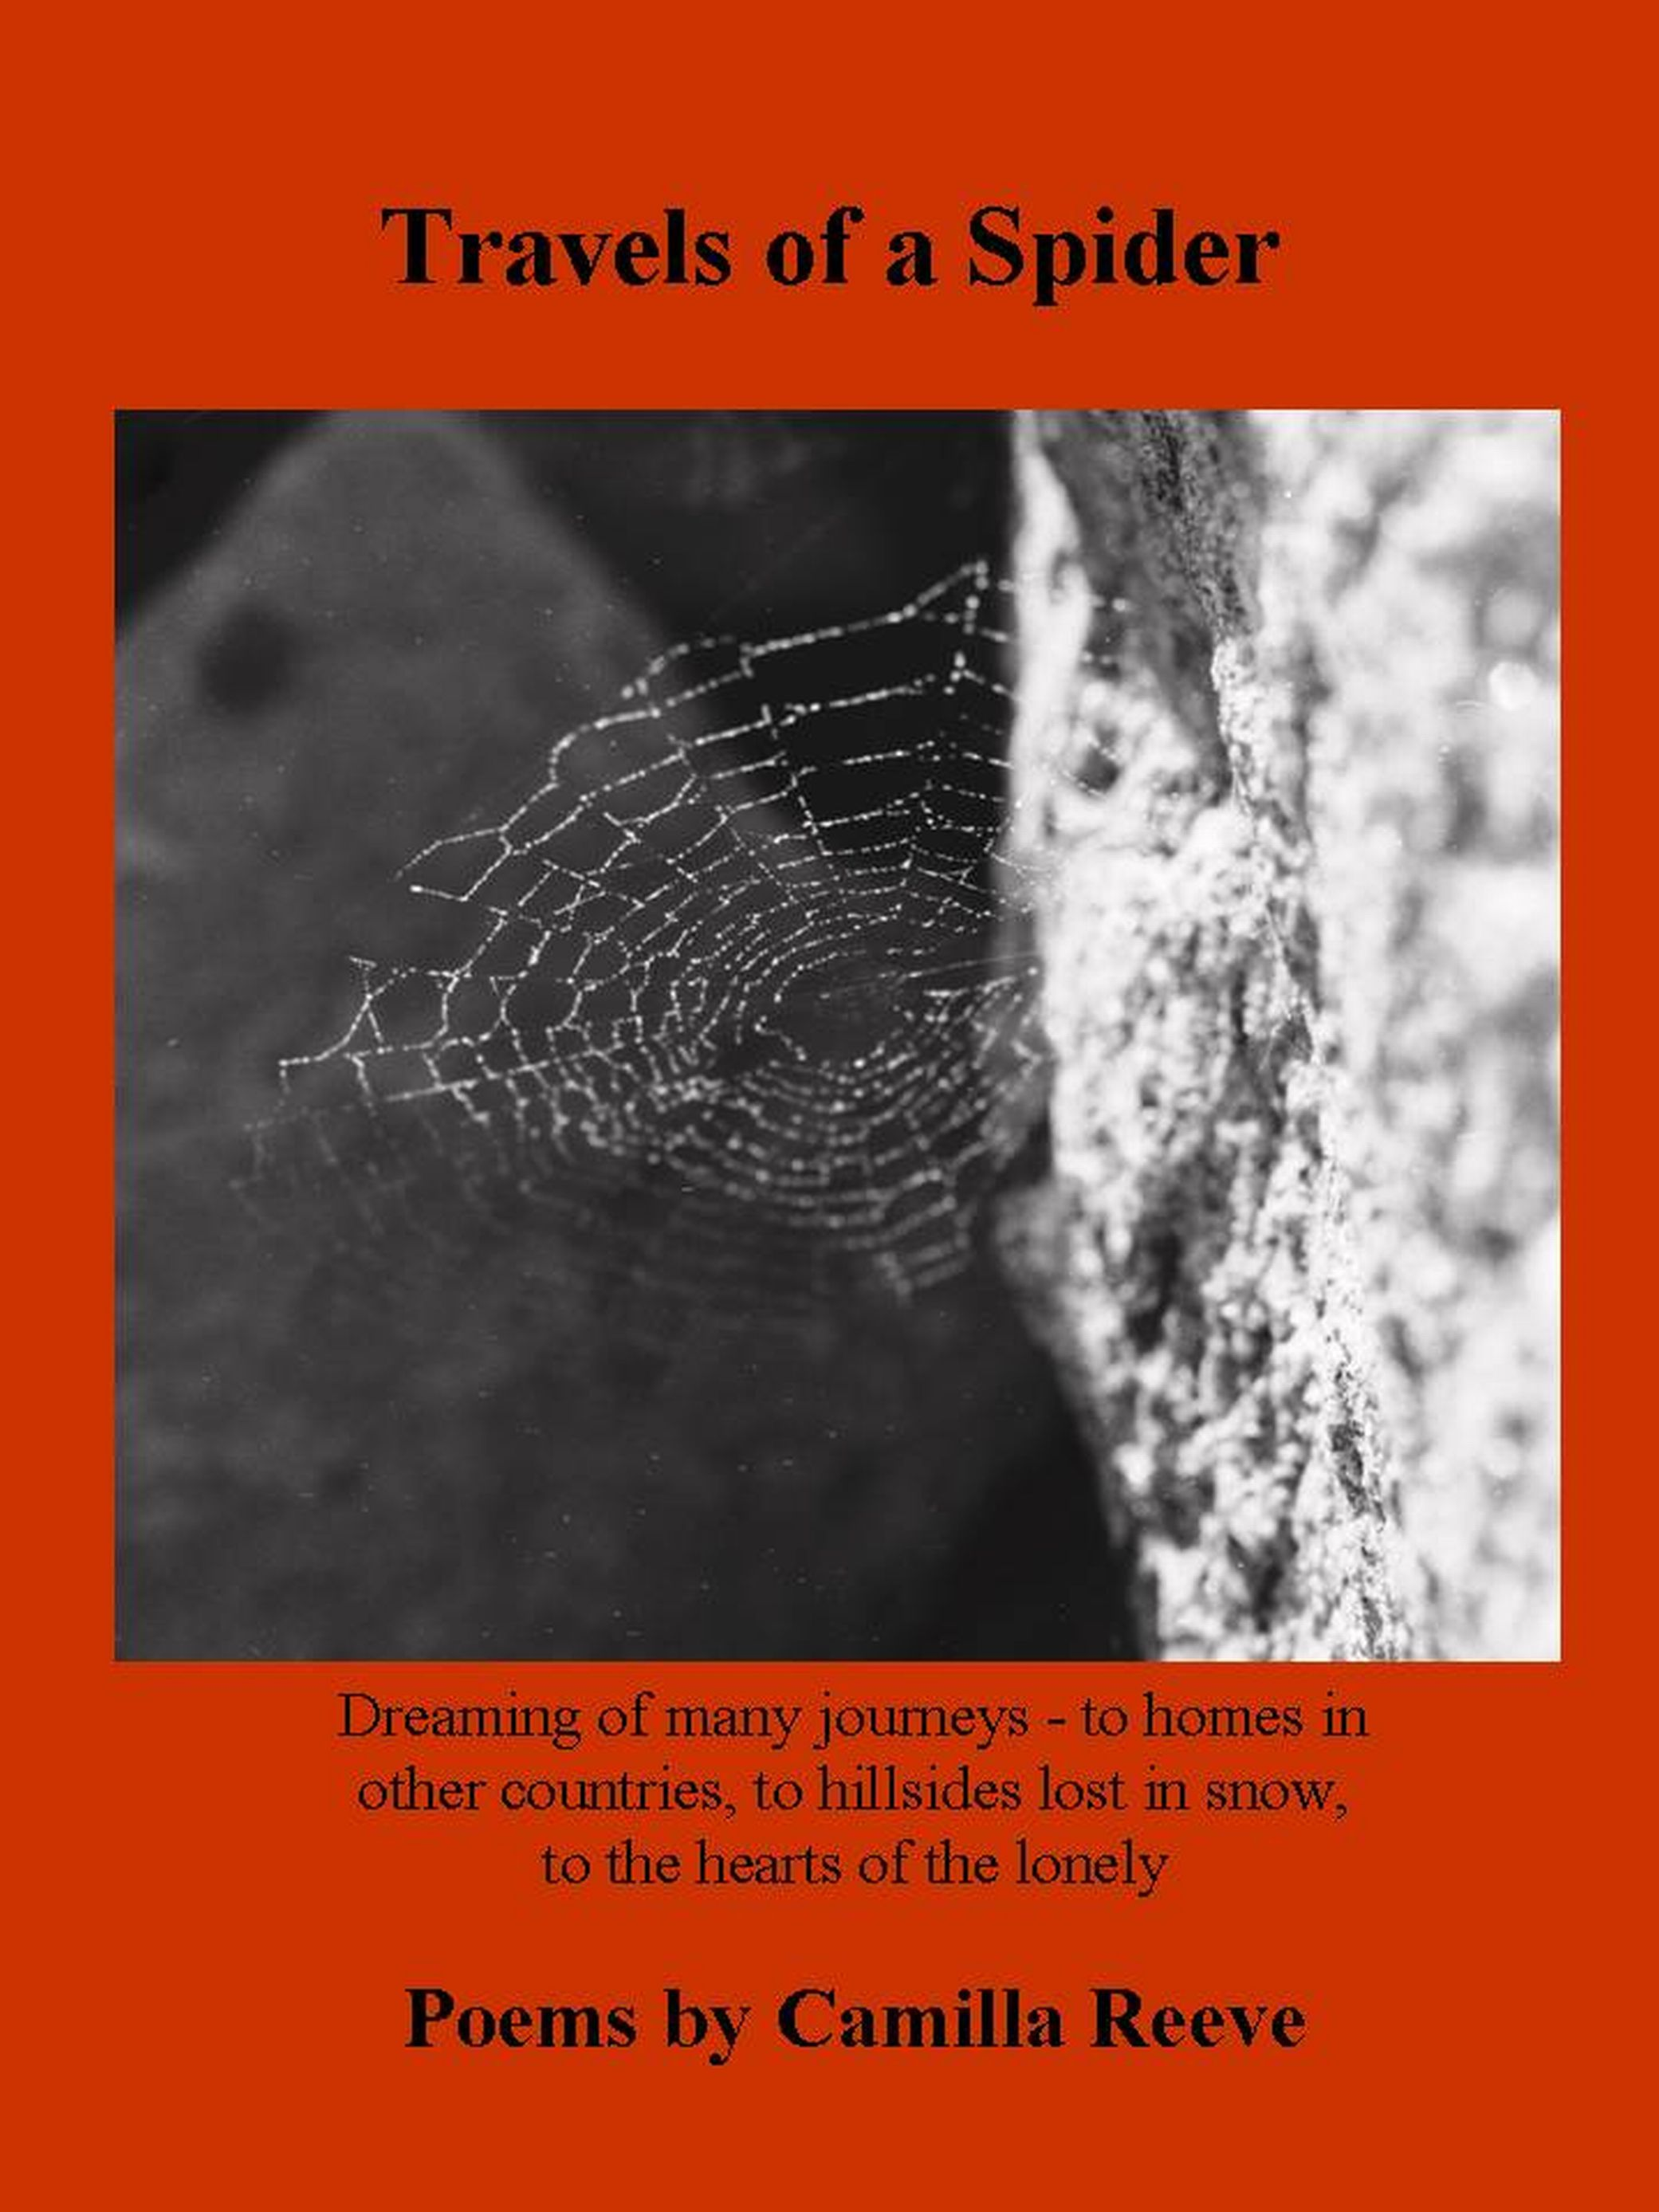 Travels of a Spider, front cover